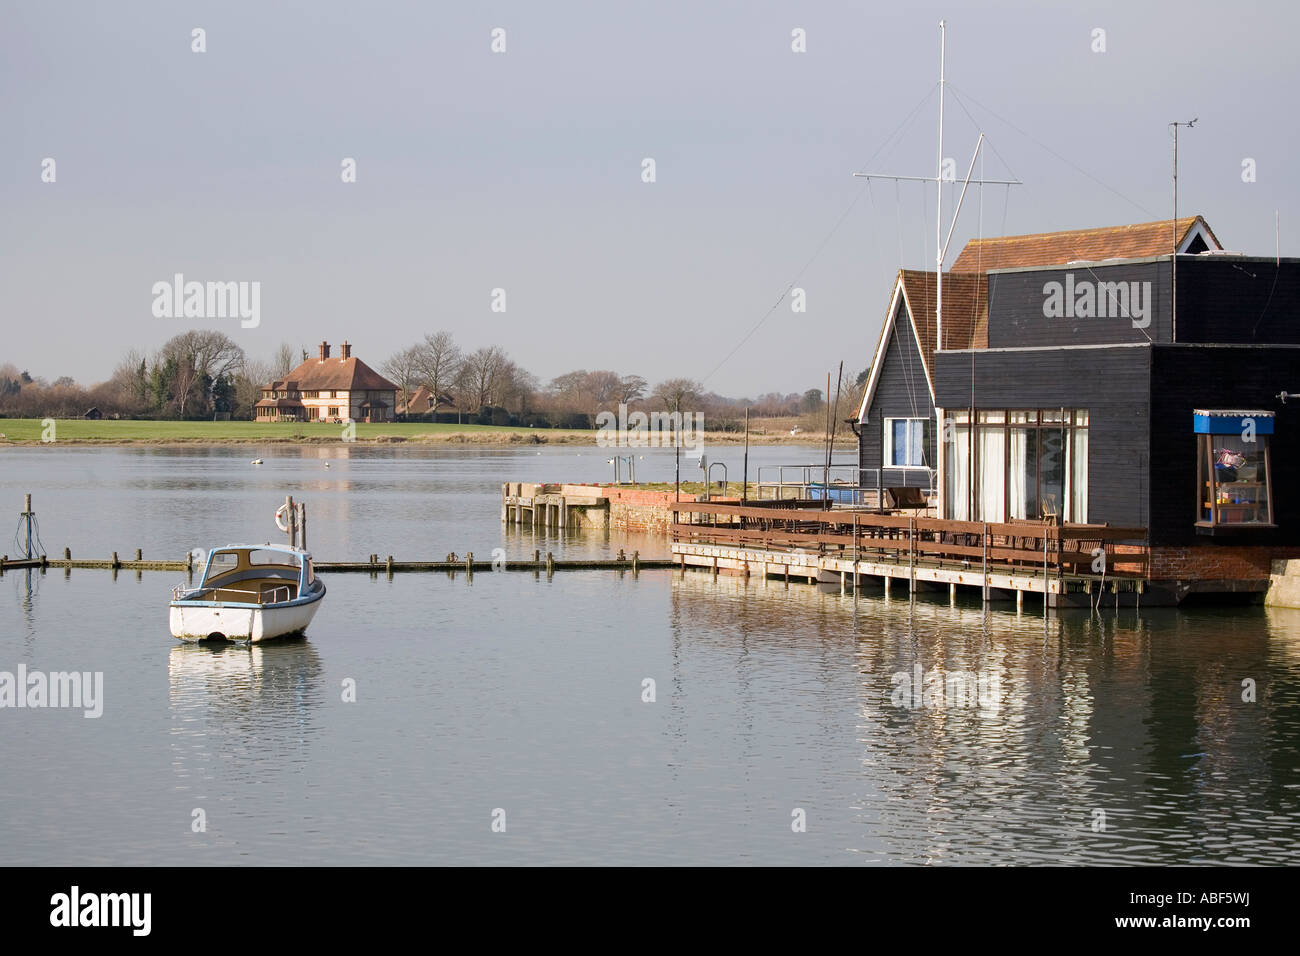 Boats at Dell Quay, Chichester, West Sussex, England, UK - Stock Image